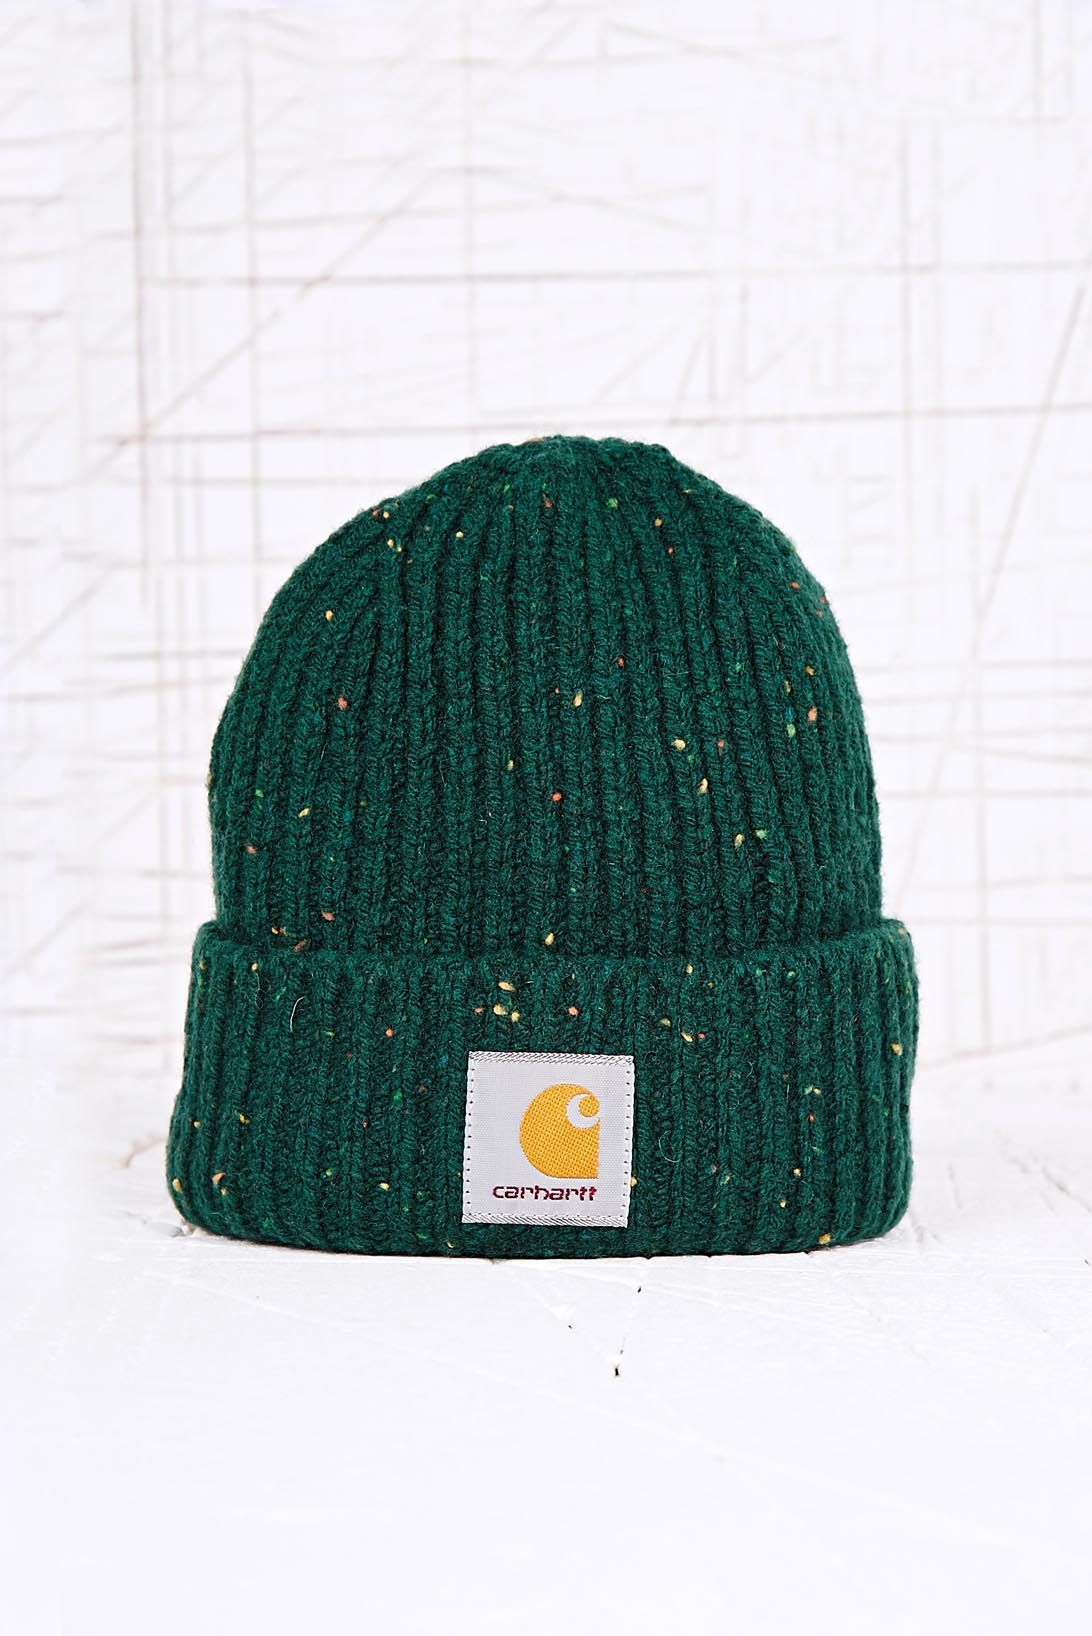 0342c45e0b4 Carhartt Anglistic Beanie Hat in Green in Green for Men